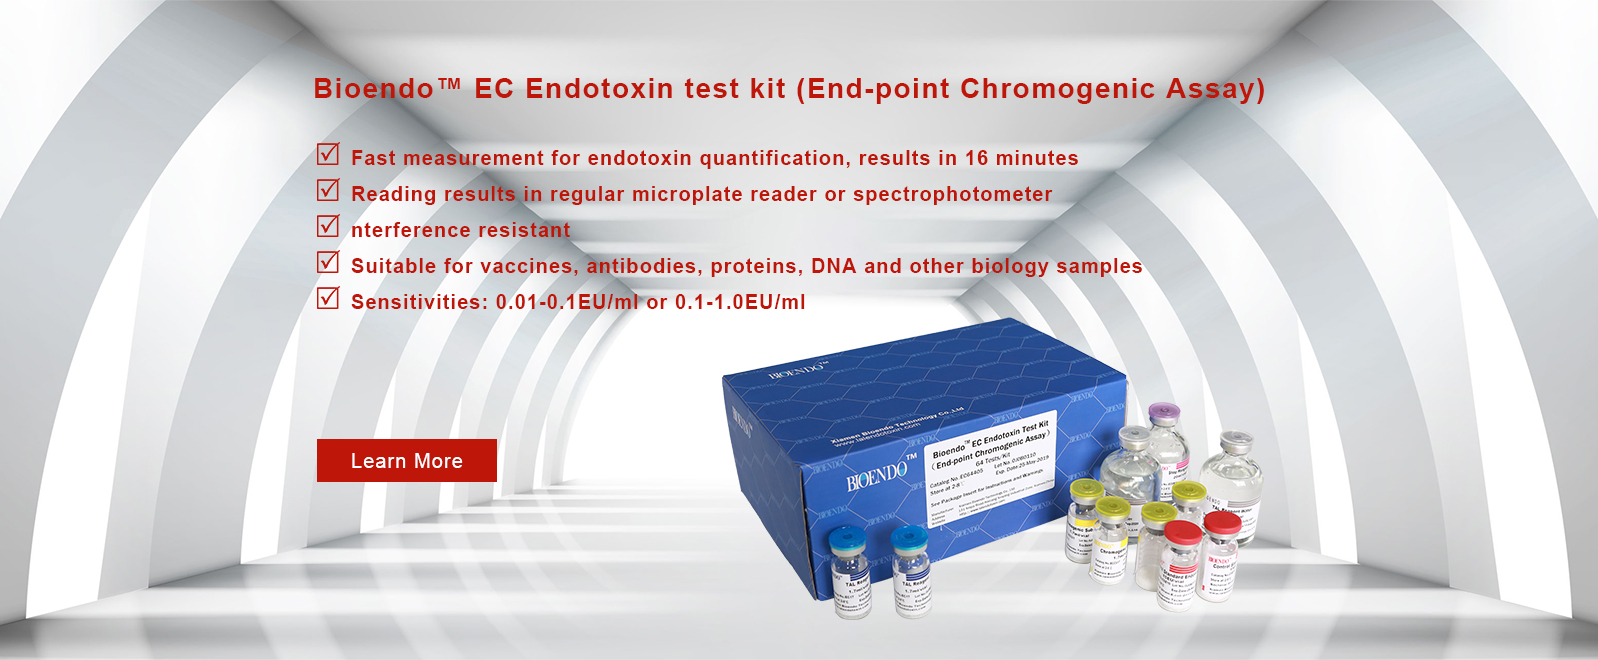 End-Point Chromogenic Endotoxin Test LAL Kit With Diazo Reagent